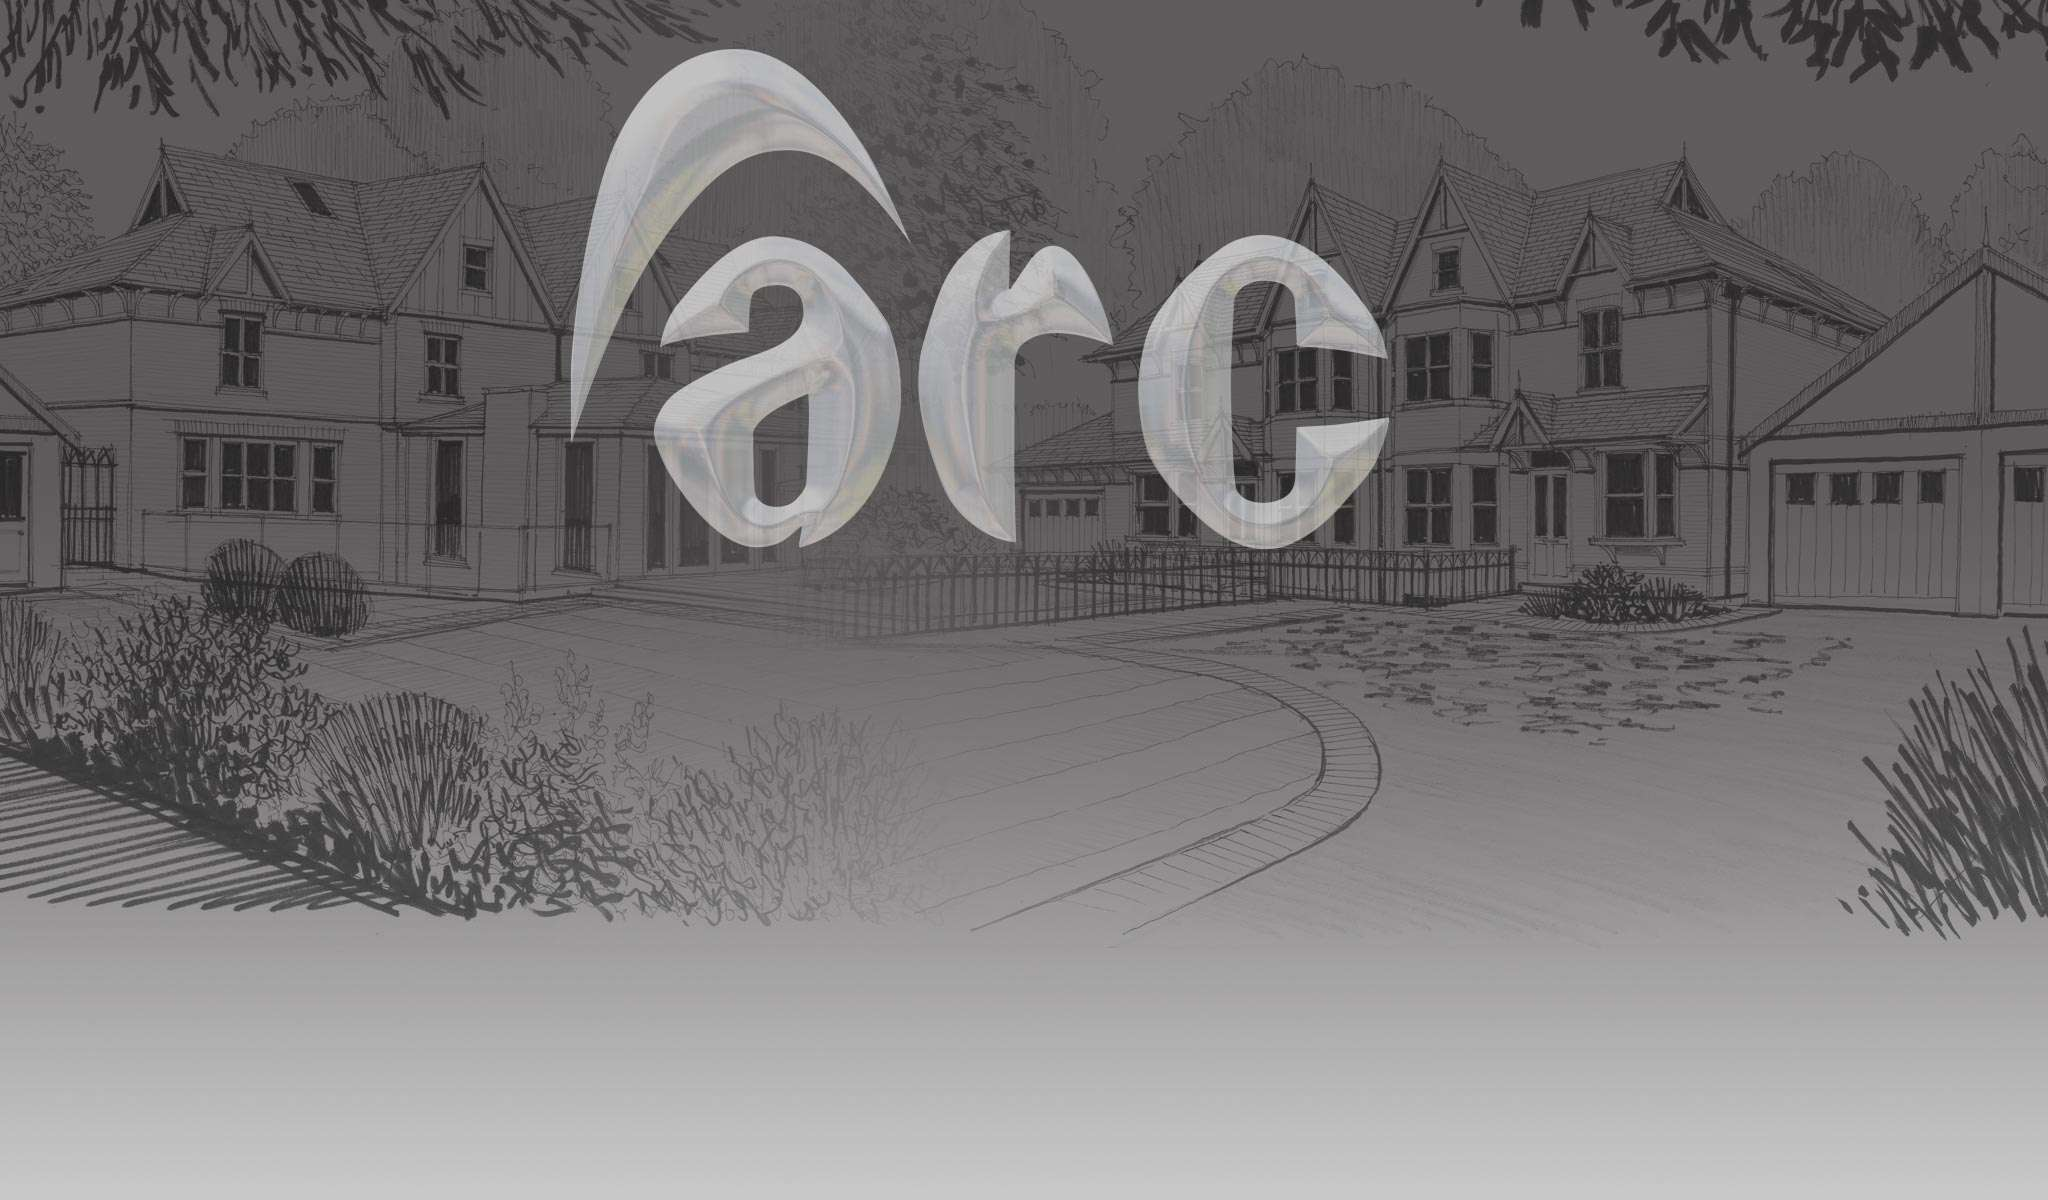 Another exciting project for ARC Design Services